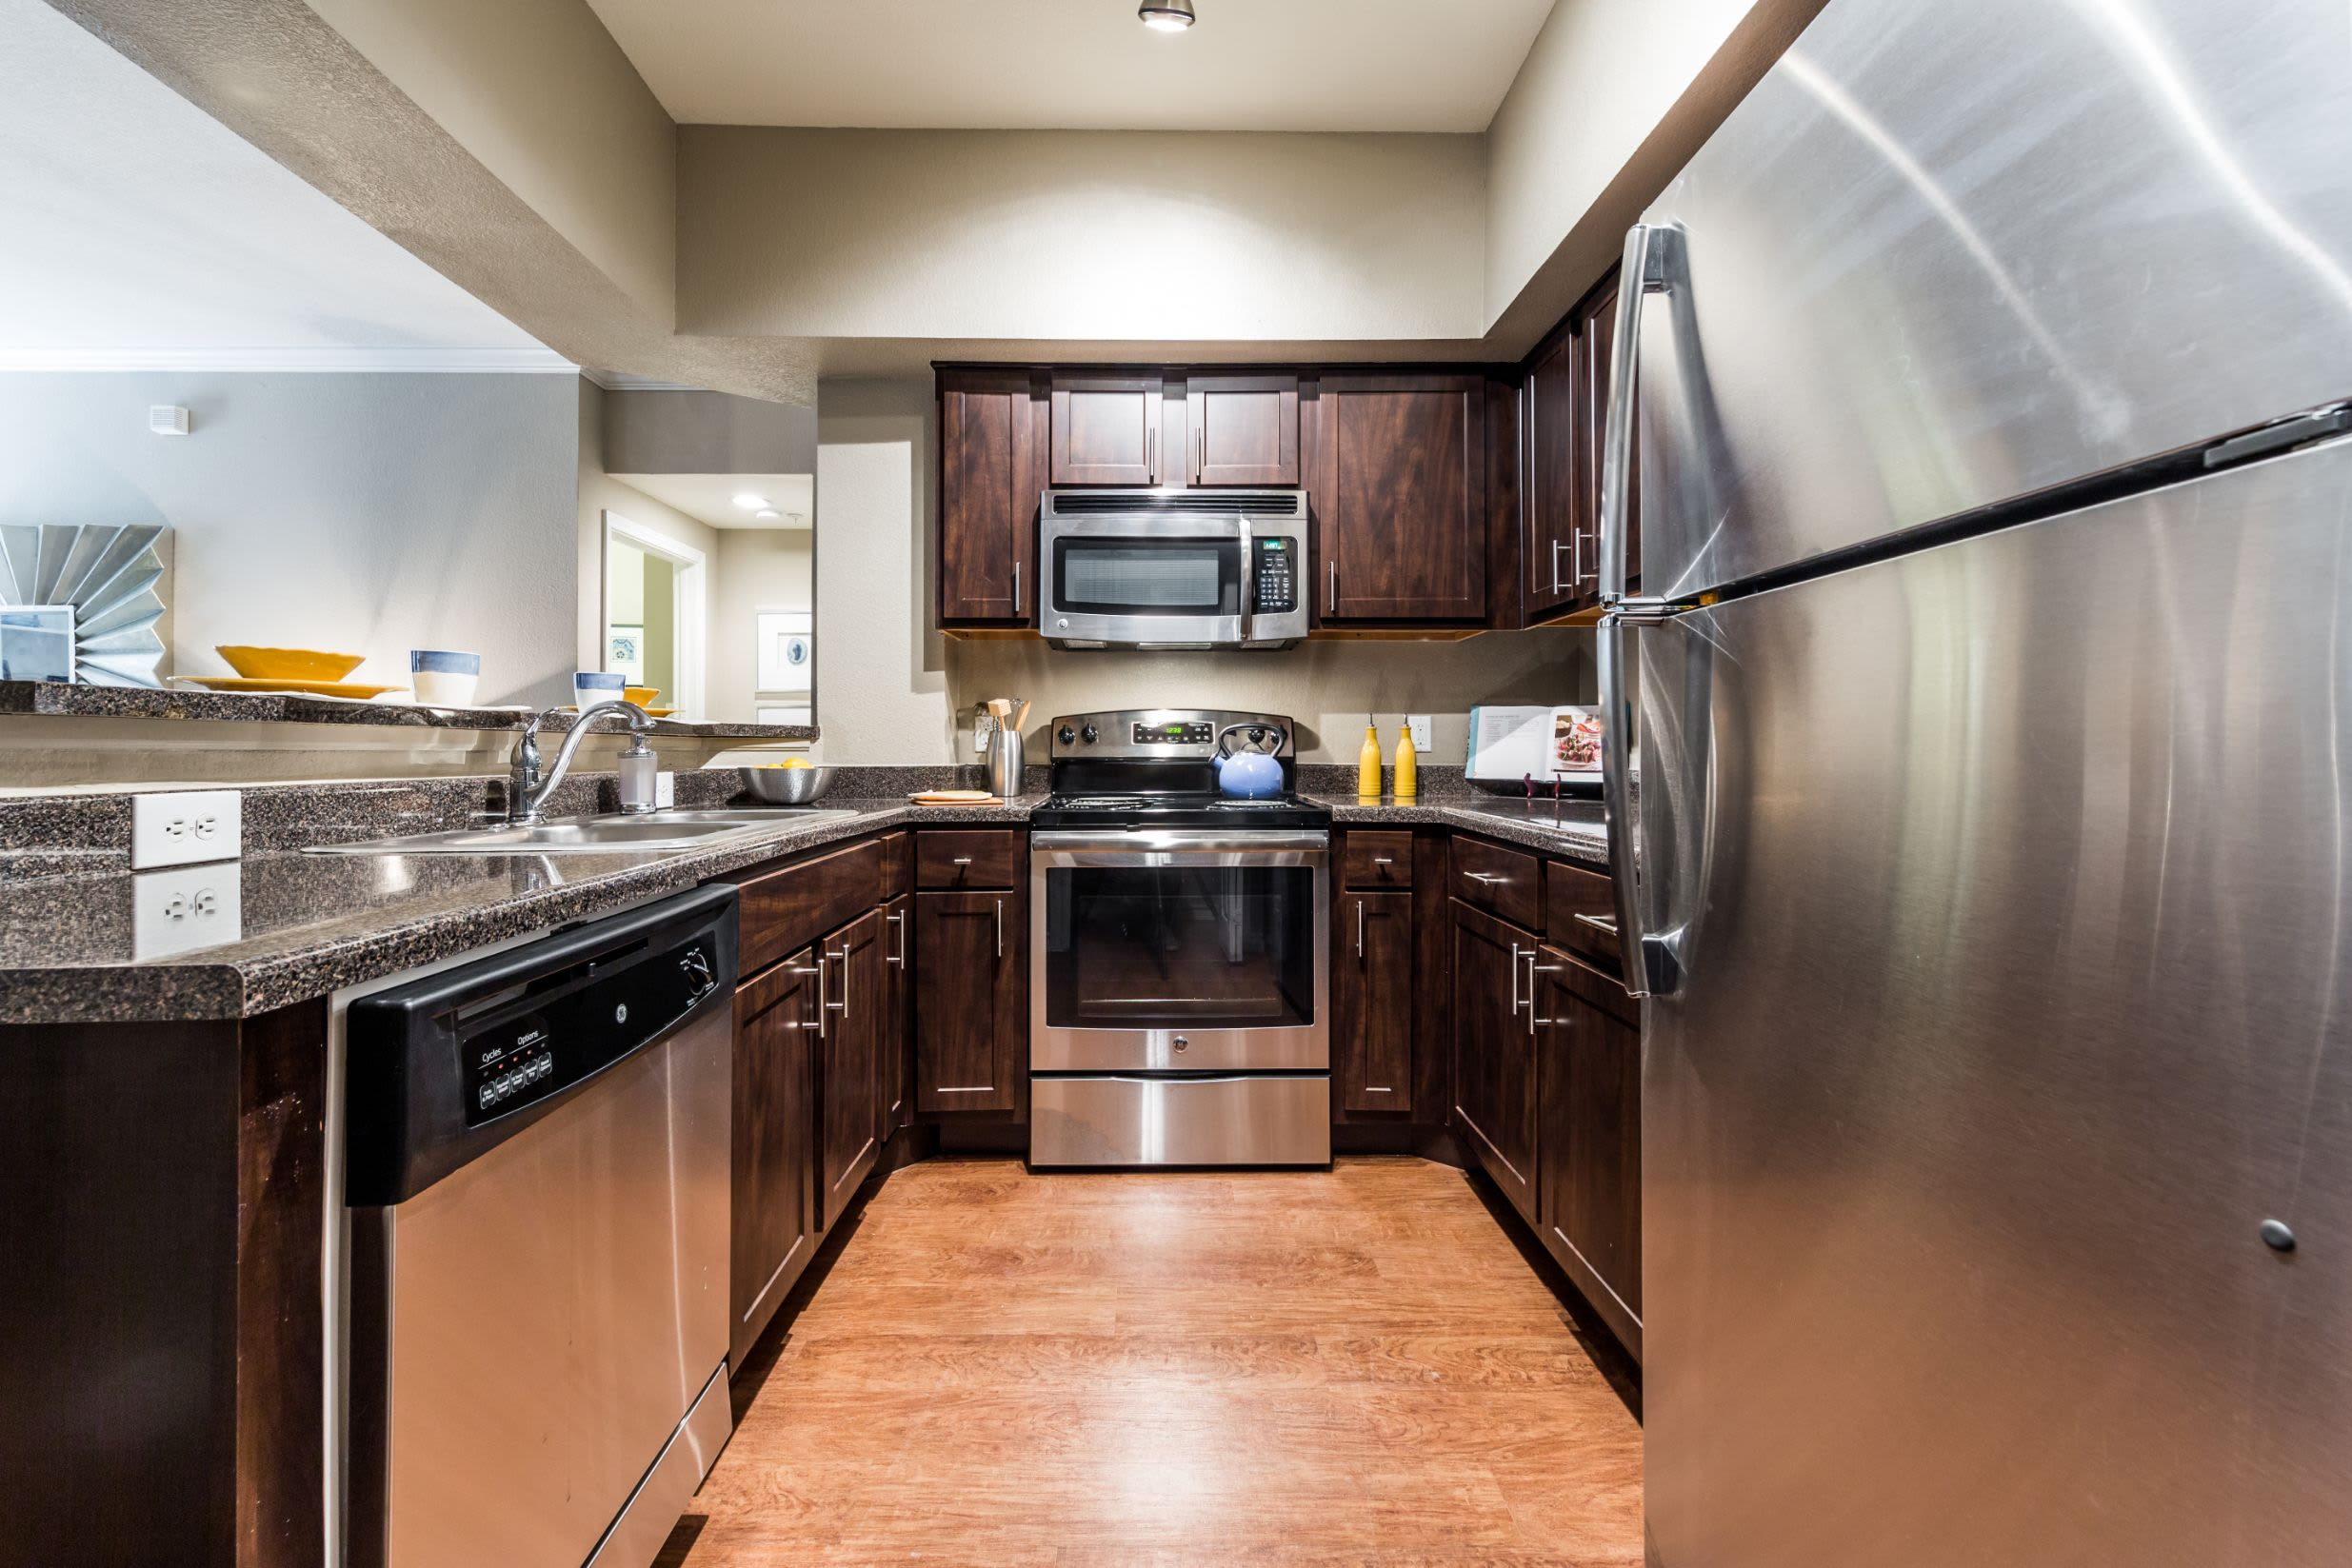 Kitchen with modern appliances at Marquis at Deerfield in San Antonio, Texas